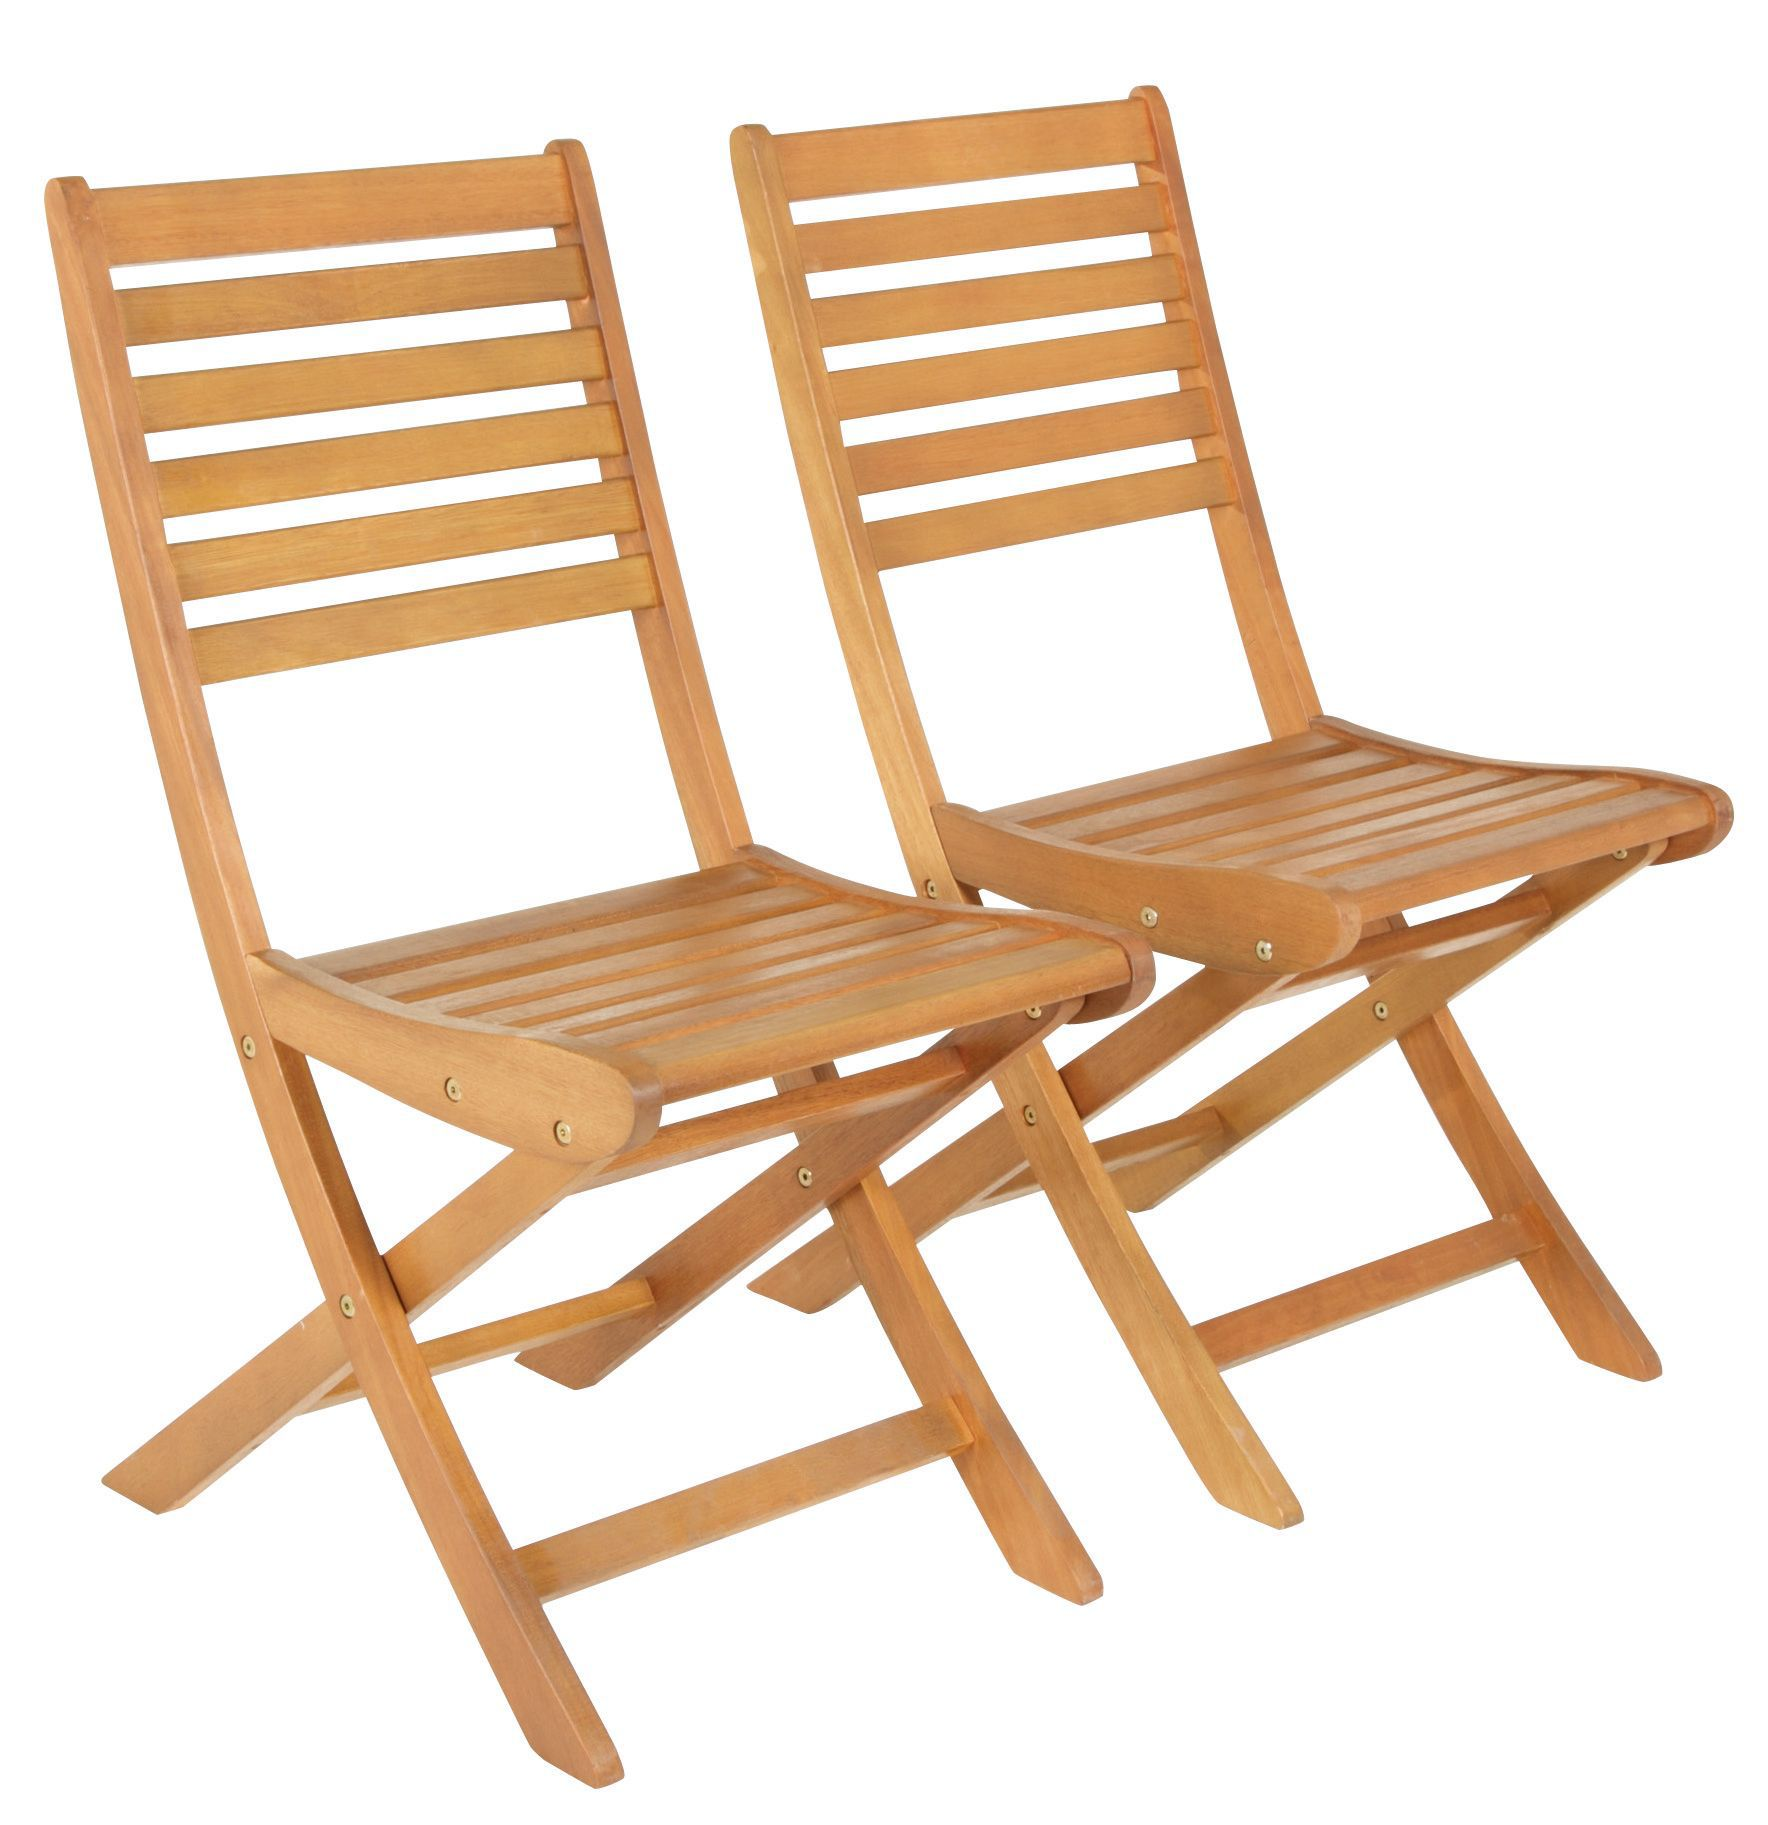 Aland Wooden Dining Chair Pack of 2 Departments